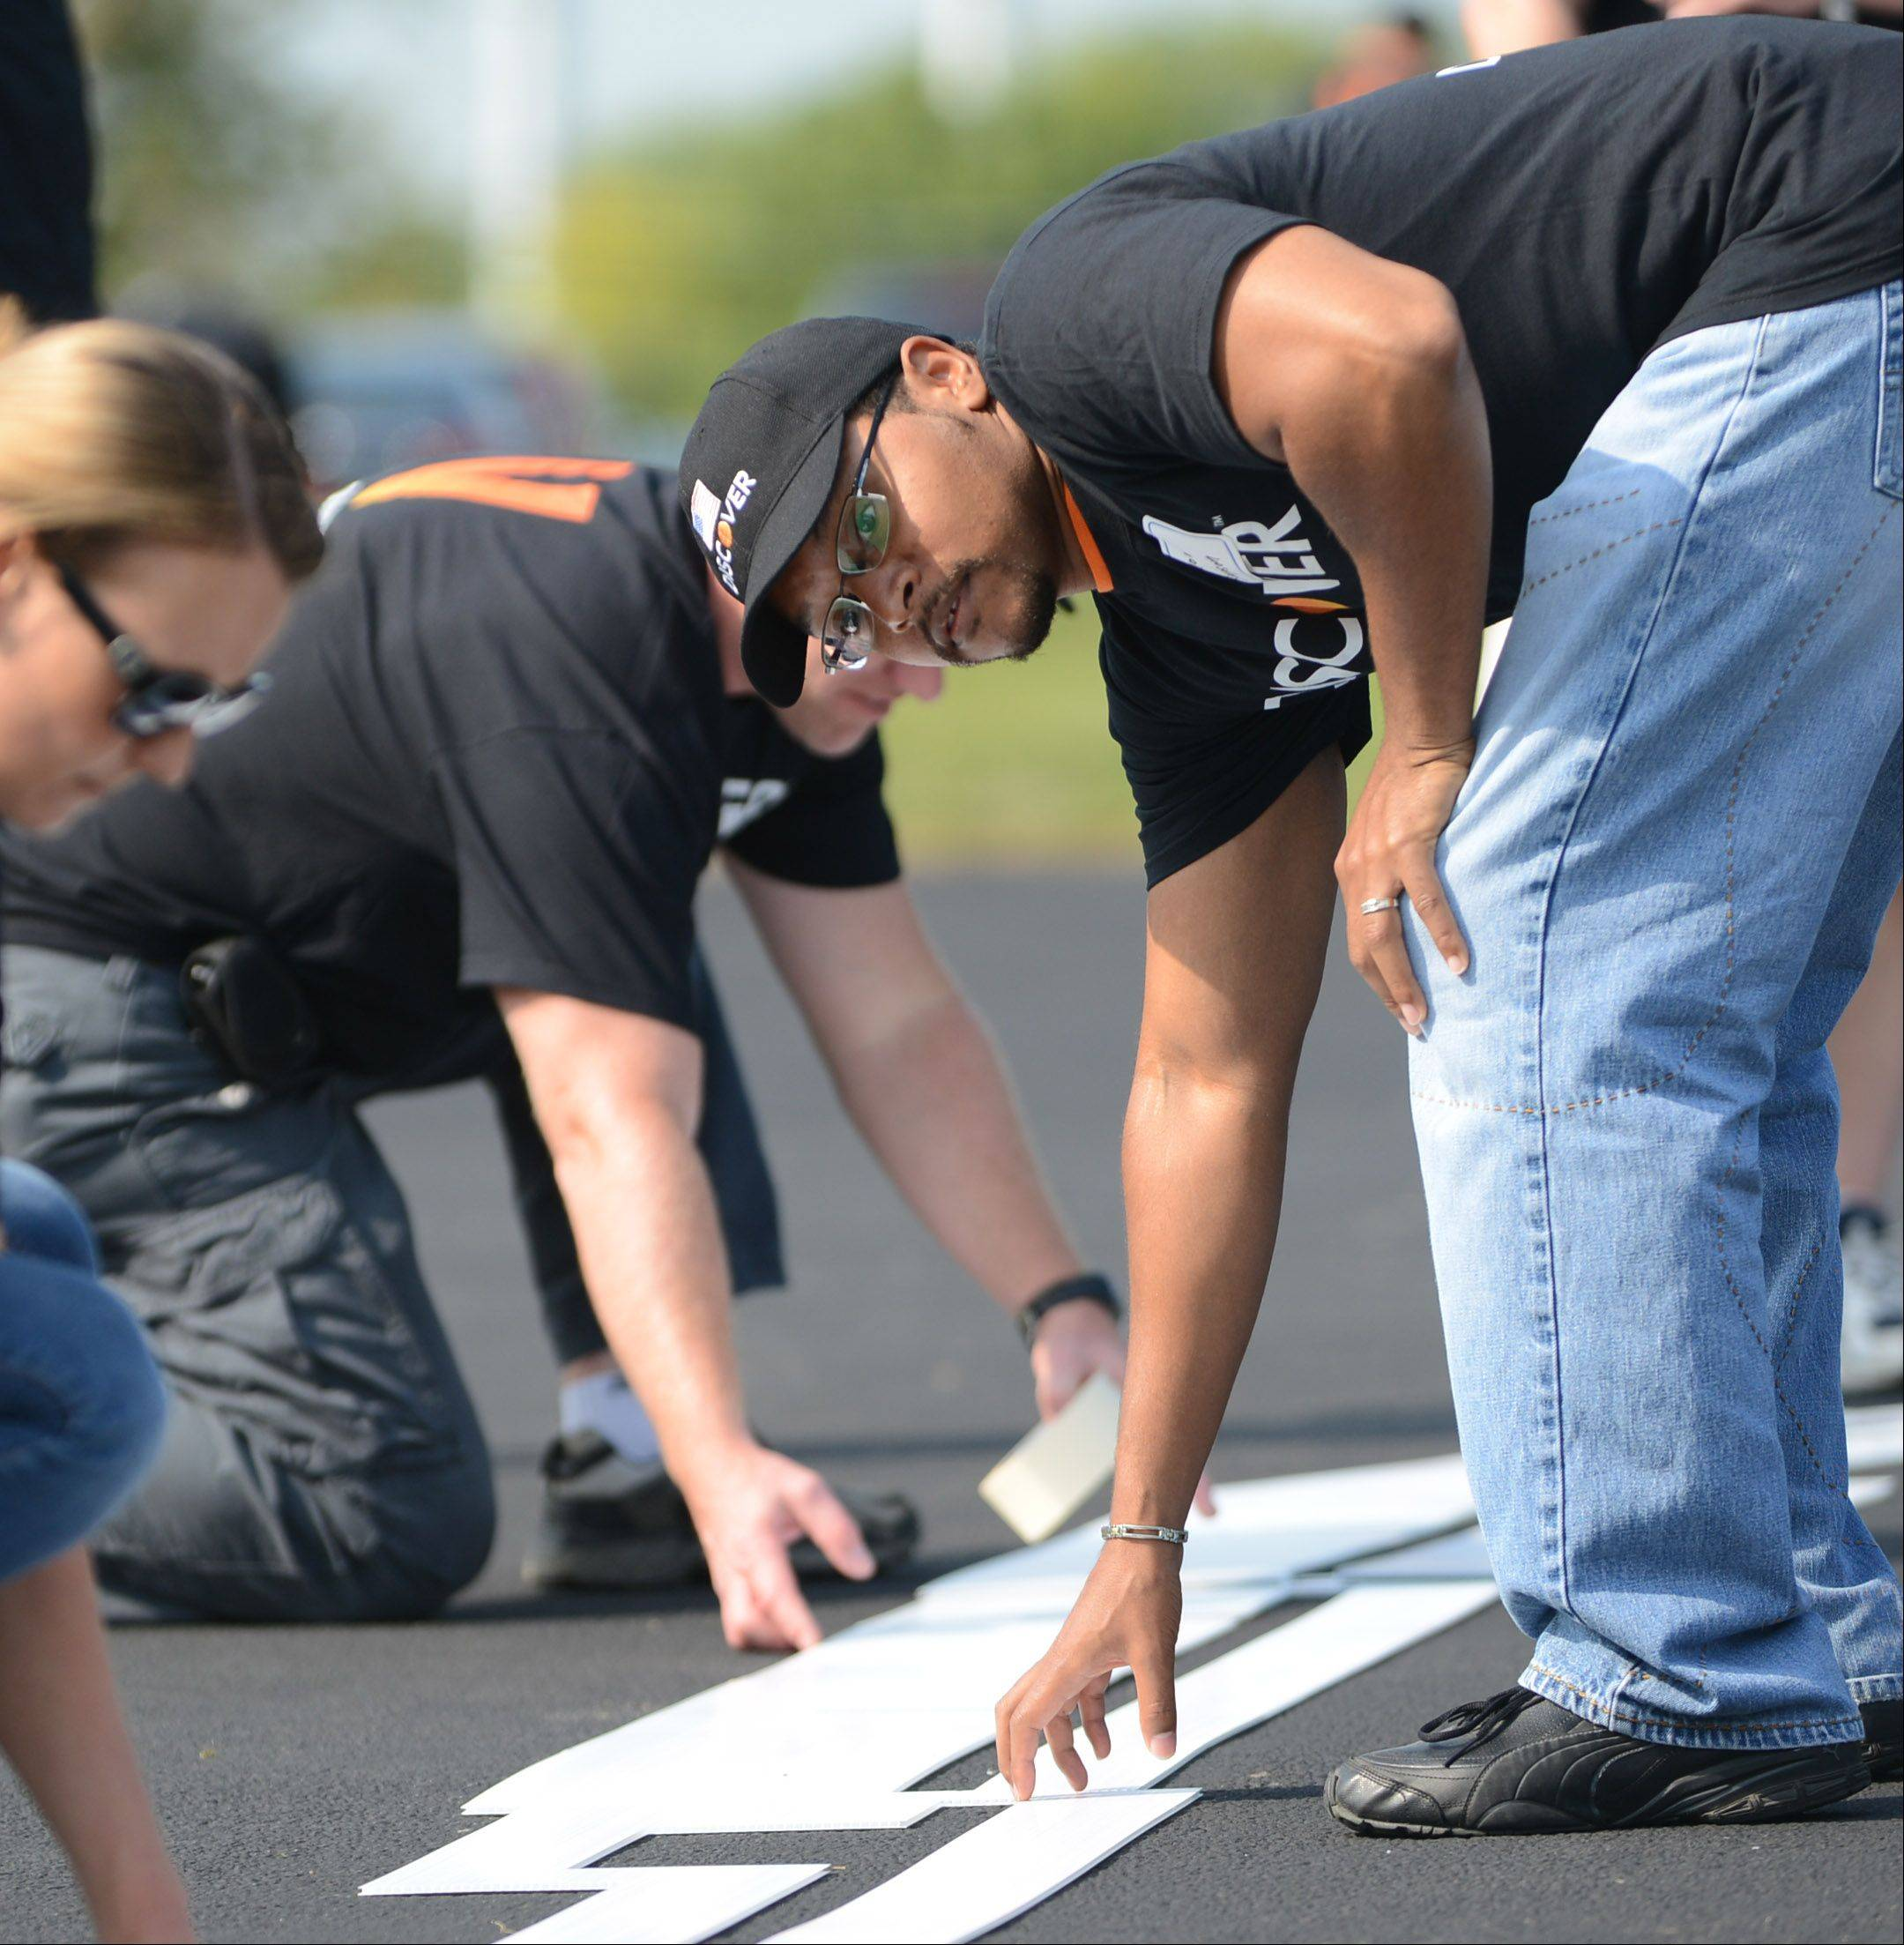 Jason Simpson, of Bartlett, helps line up a template before the lines can be painted on the basketball court.